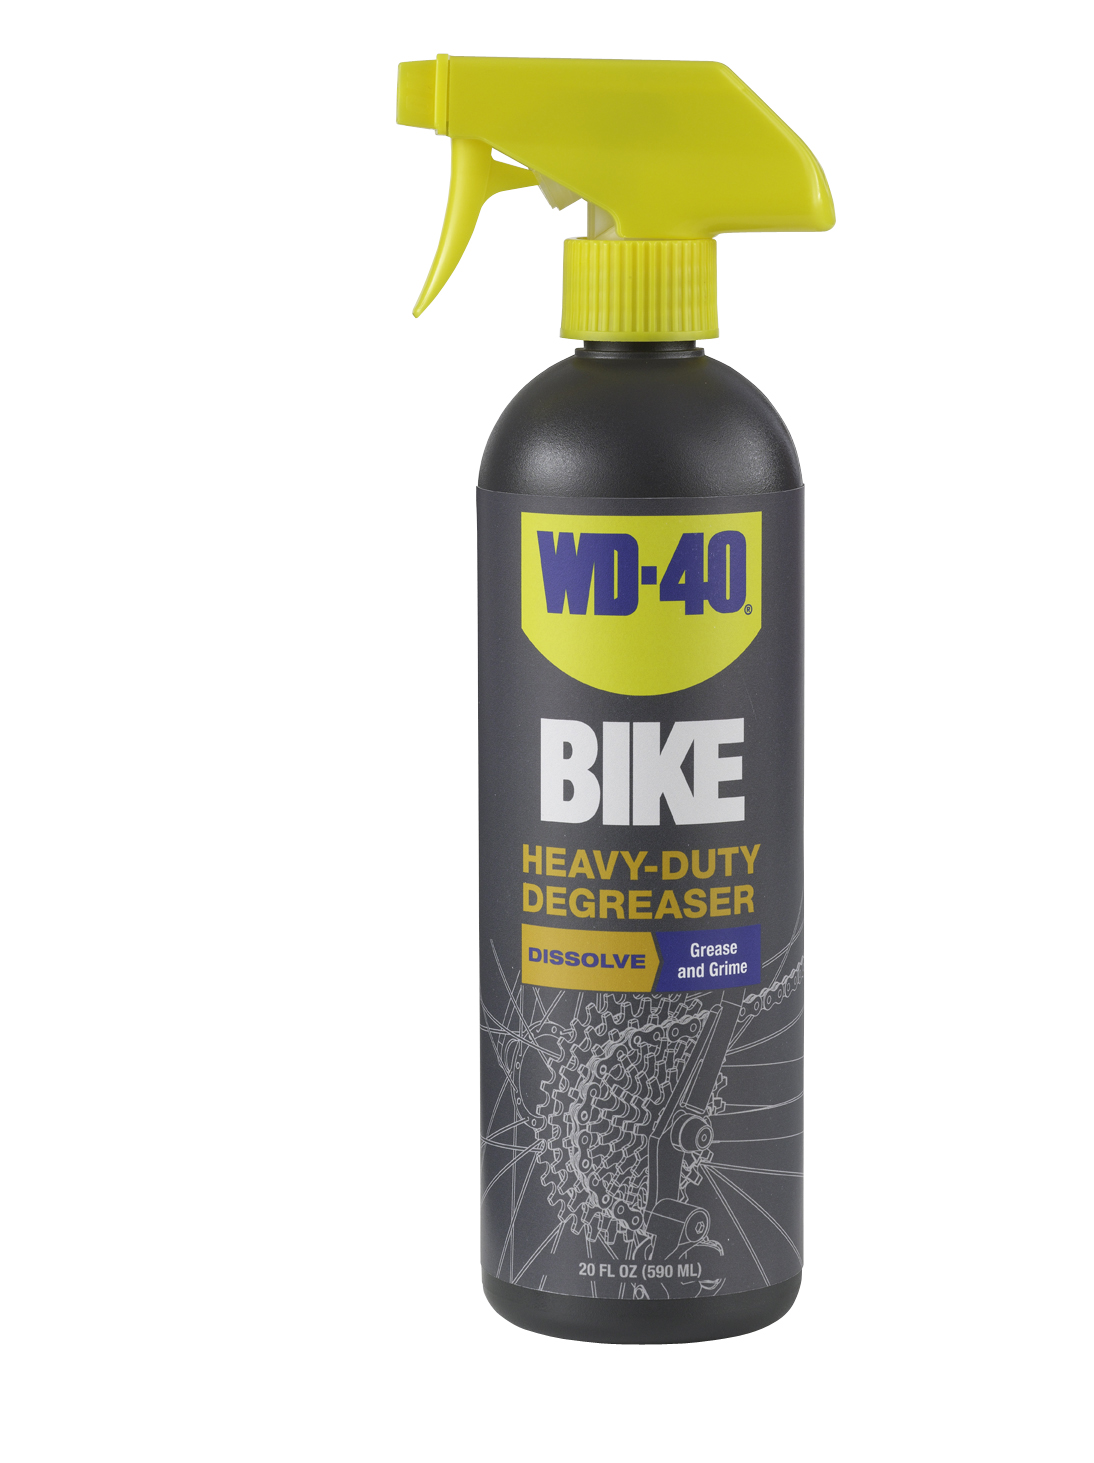 WD-40 BIKE - heavy duty degreaser